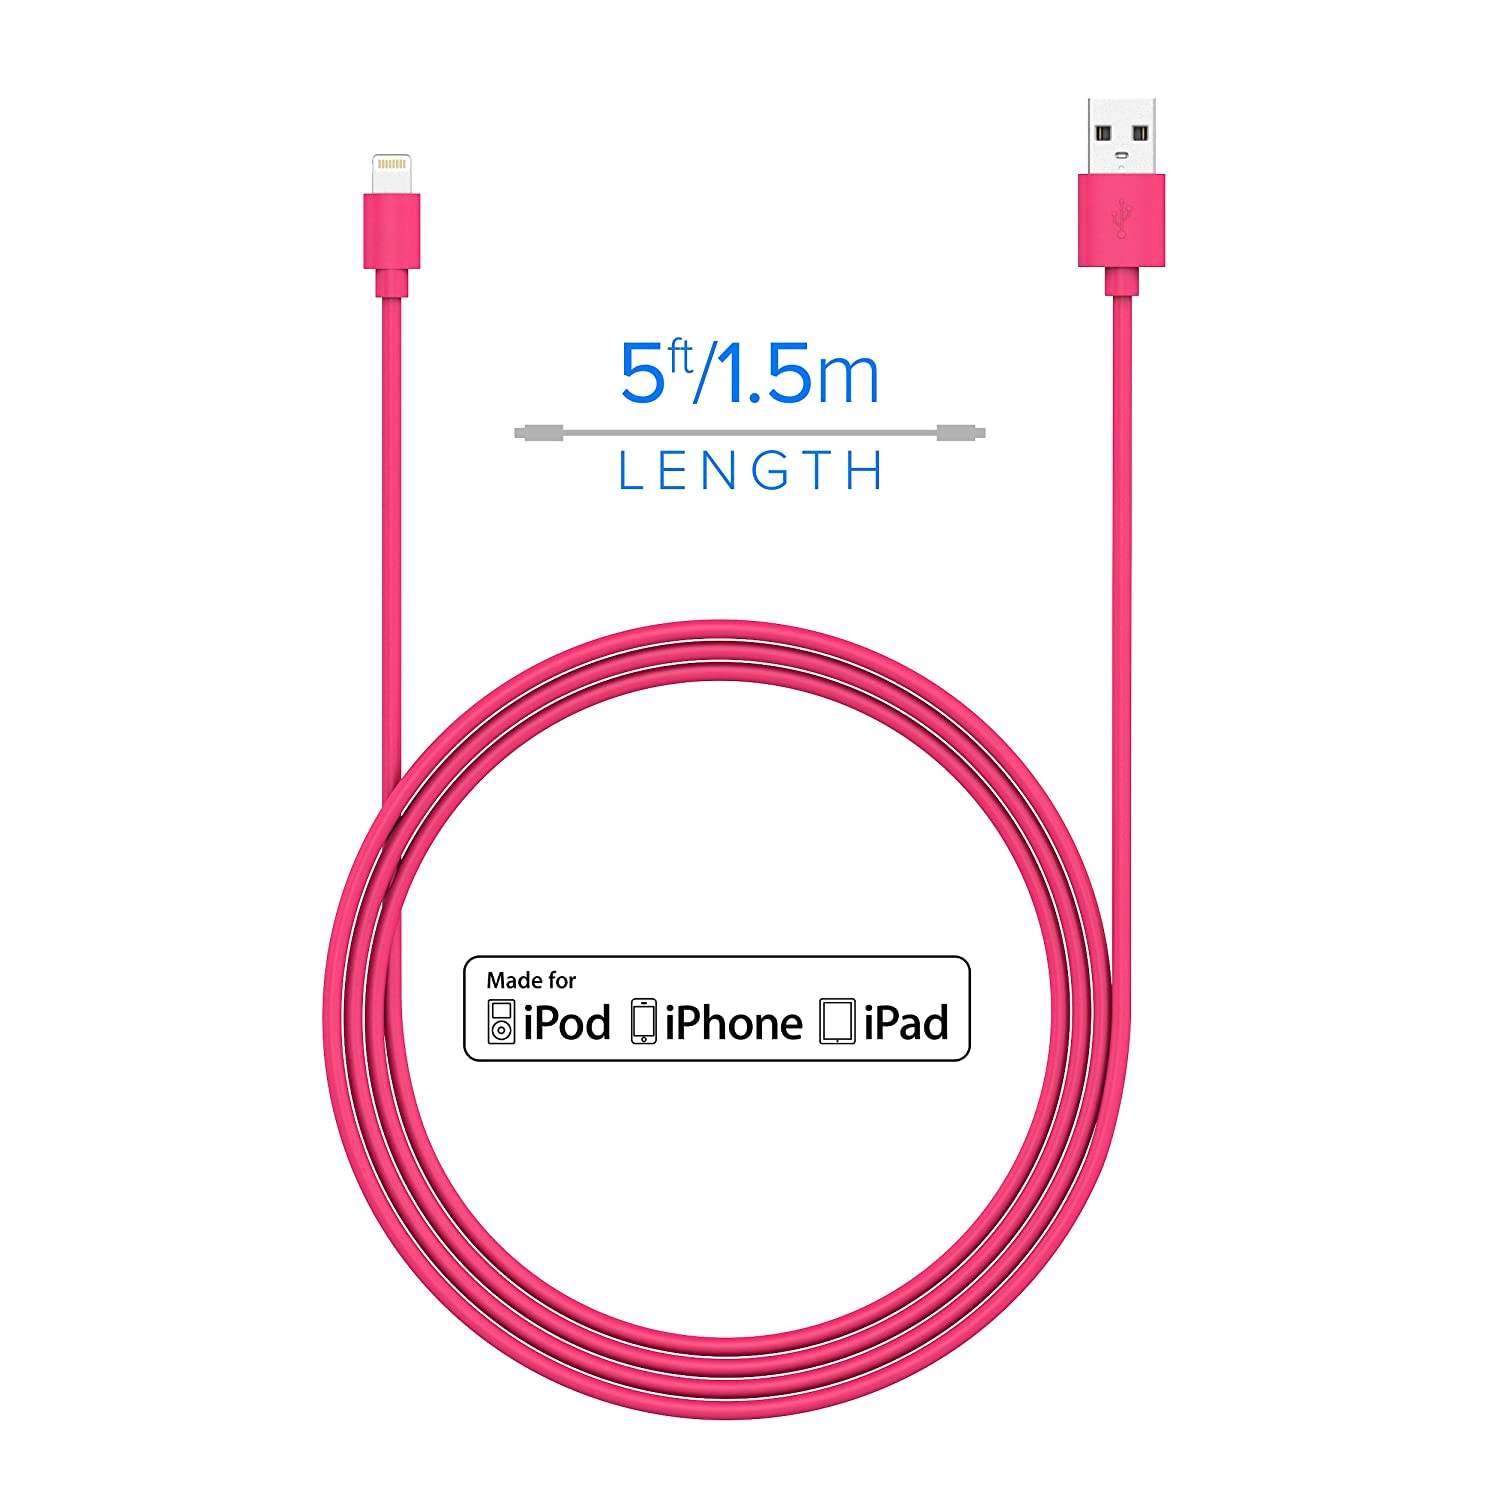 Fifo Iphone 4 Charger Wire Schematics Electrical Wiring Diagrams Apple Usb Power Cord Diagram Amazon Com Just Wireless Lightning To Cable 5ft Charge And Circuit